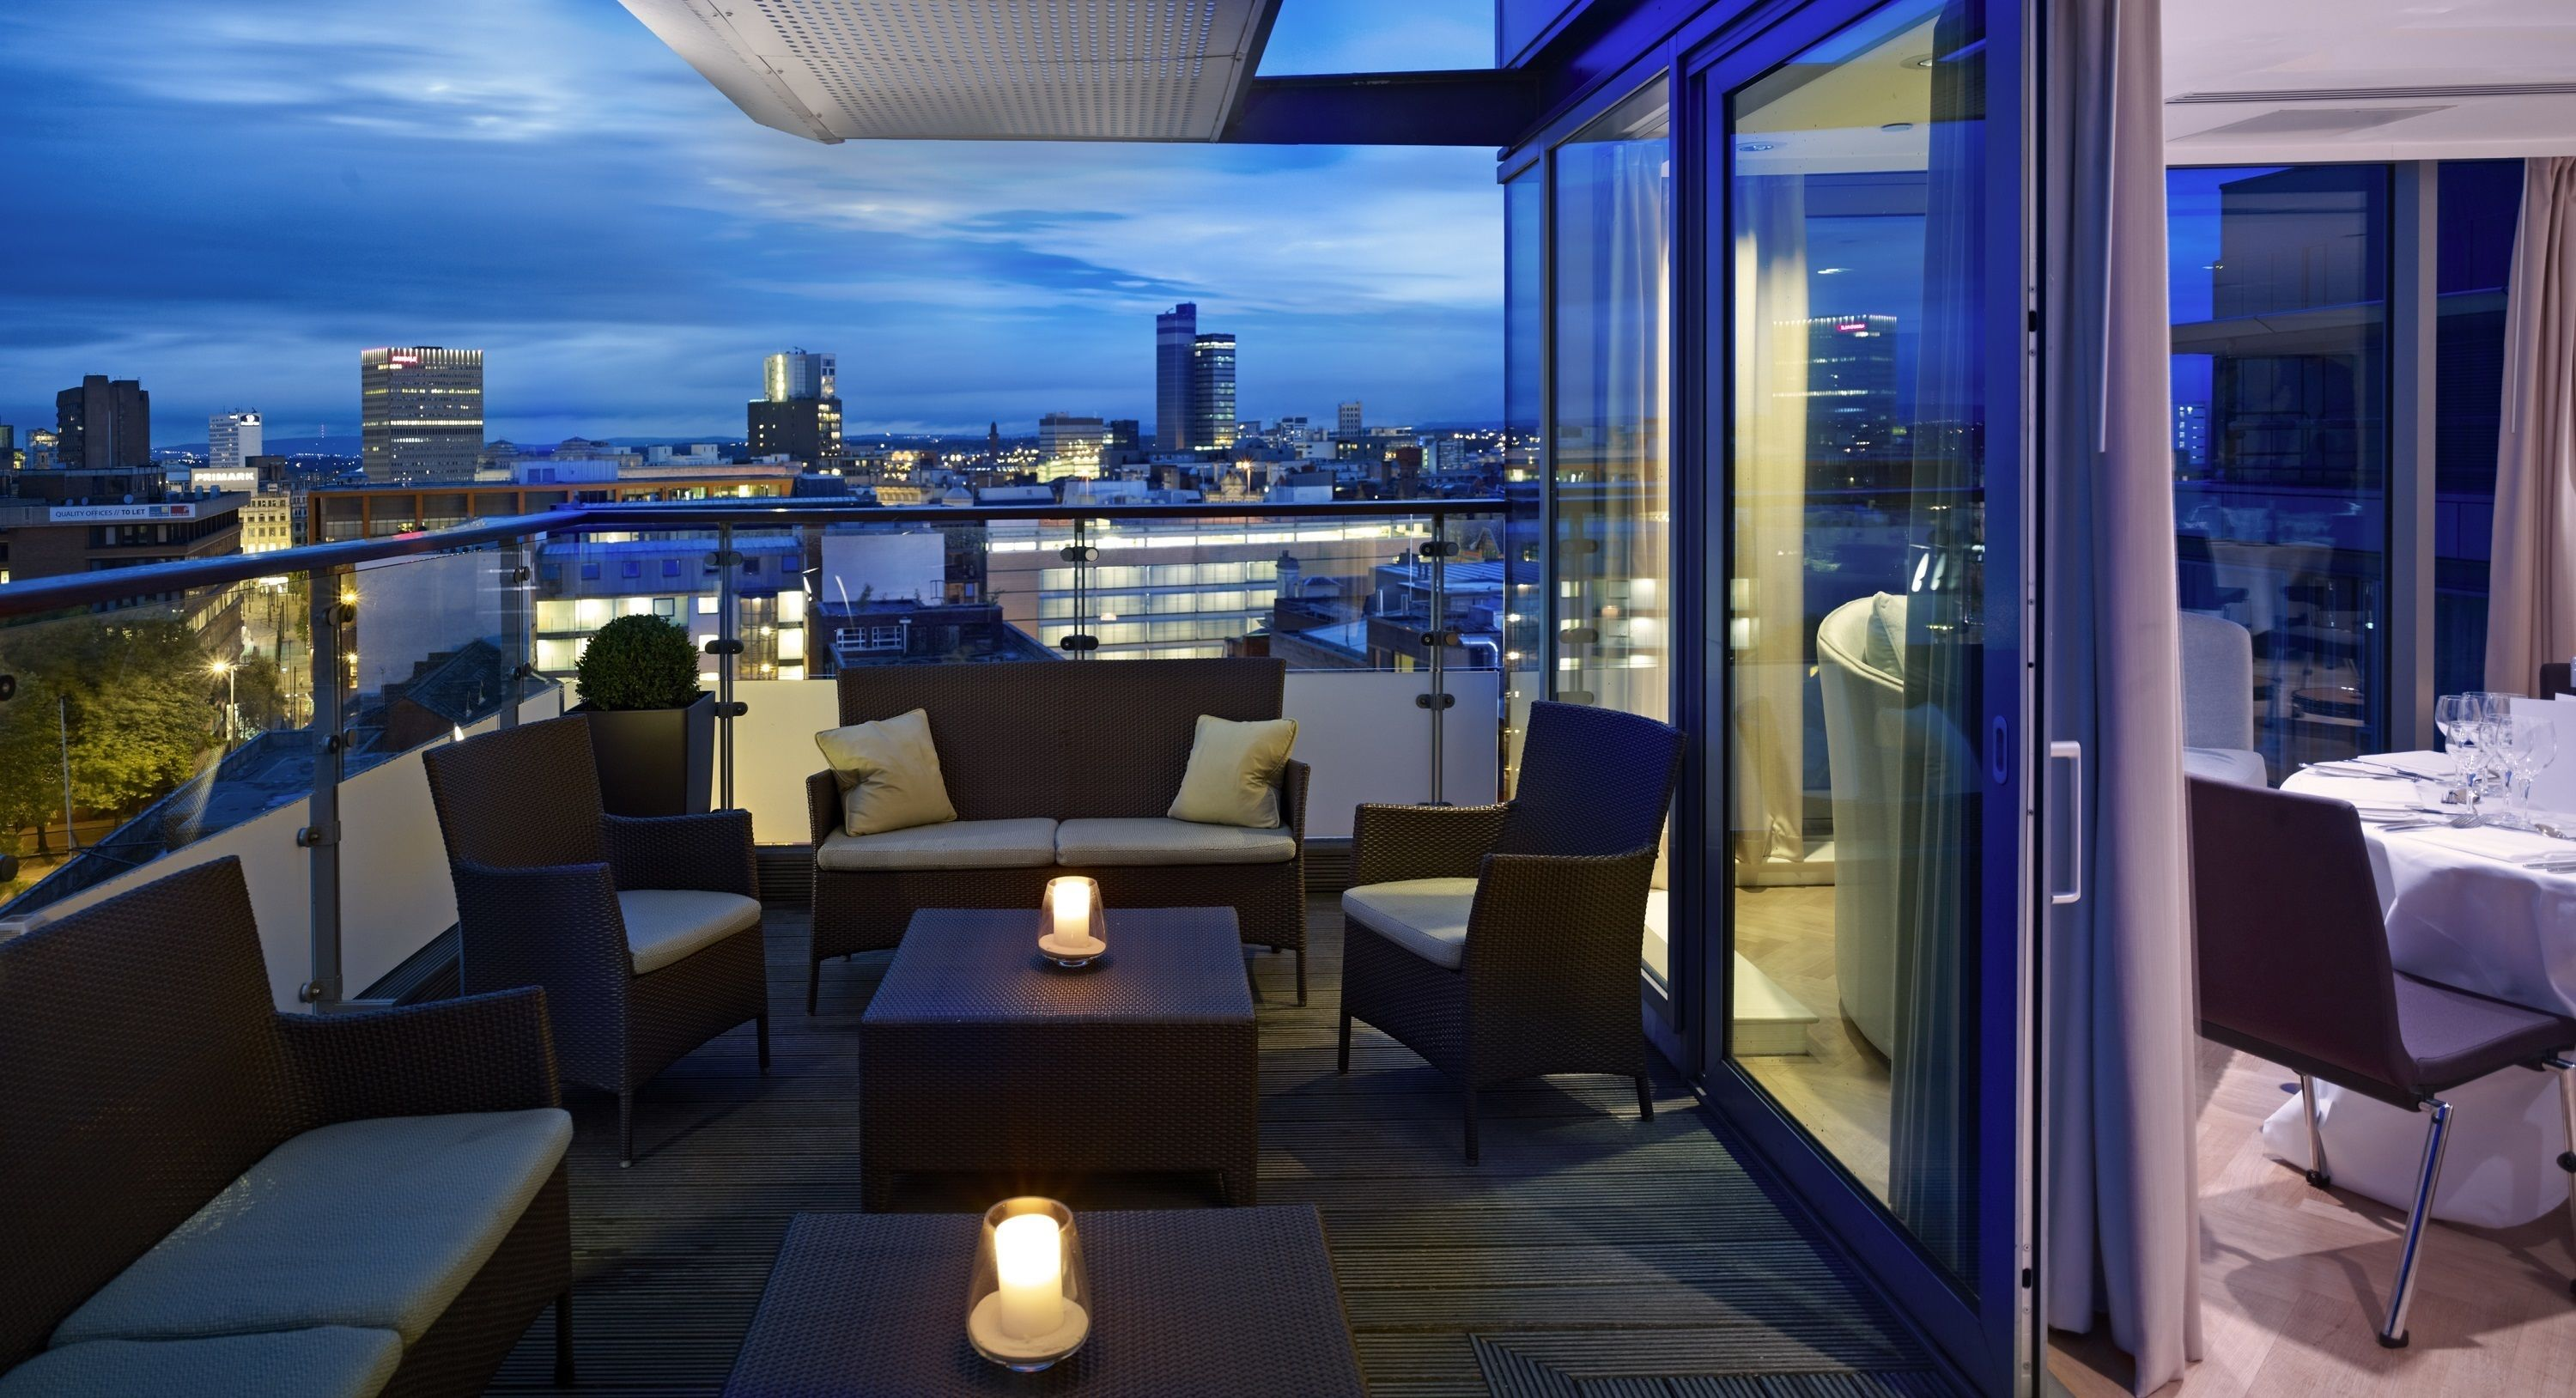 Doubletree By Hilton Piccadilly